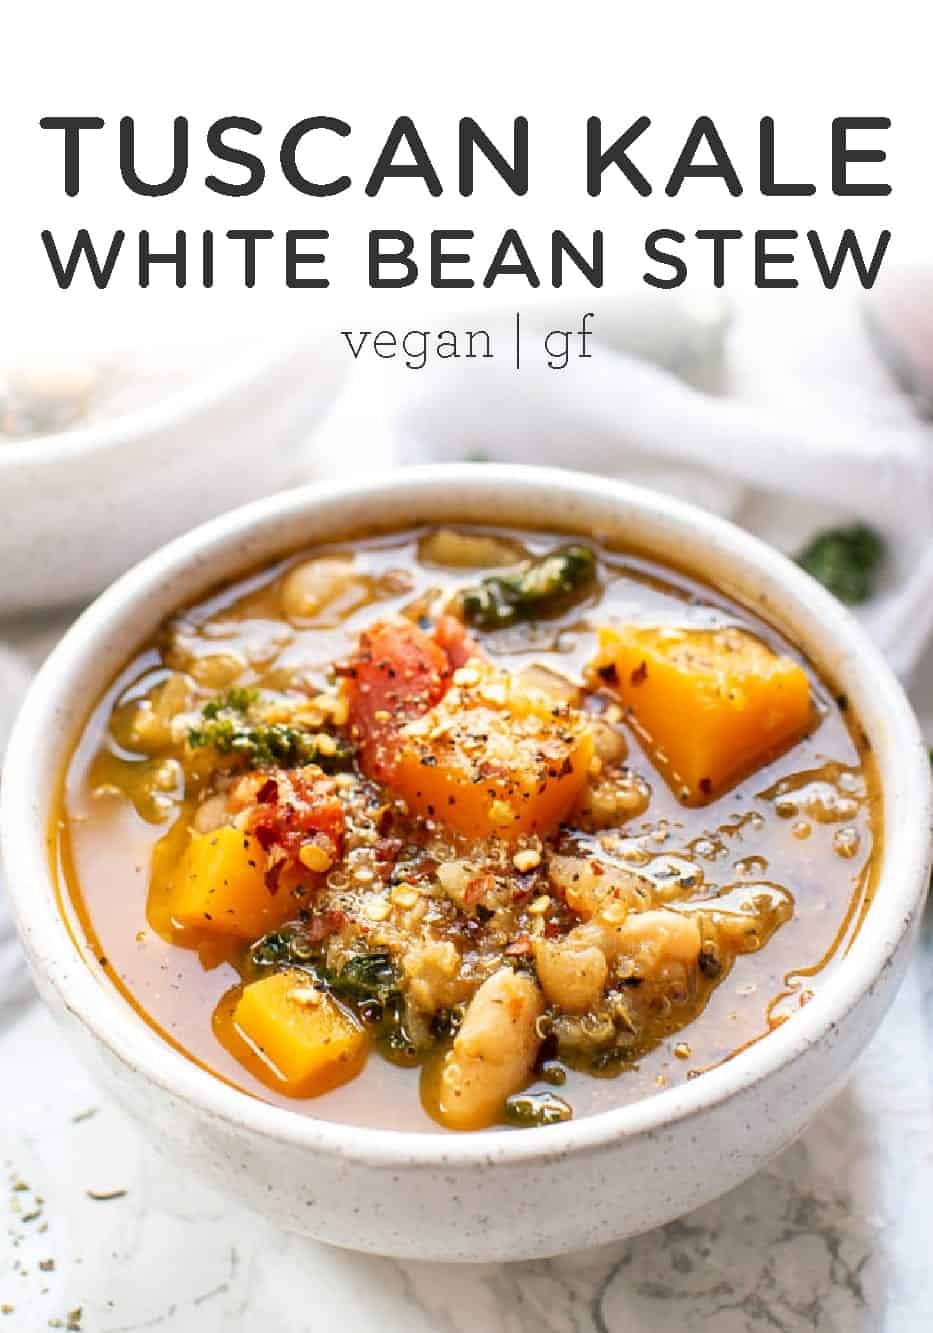 Hearty Tuscan Stew with Kale and White Beans